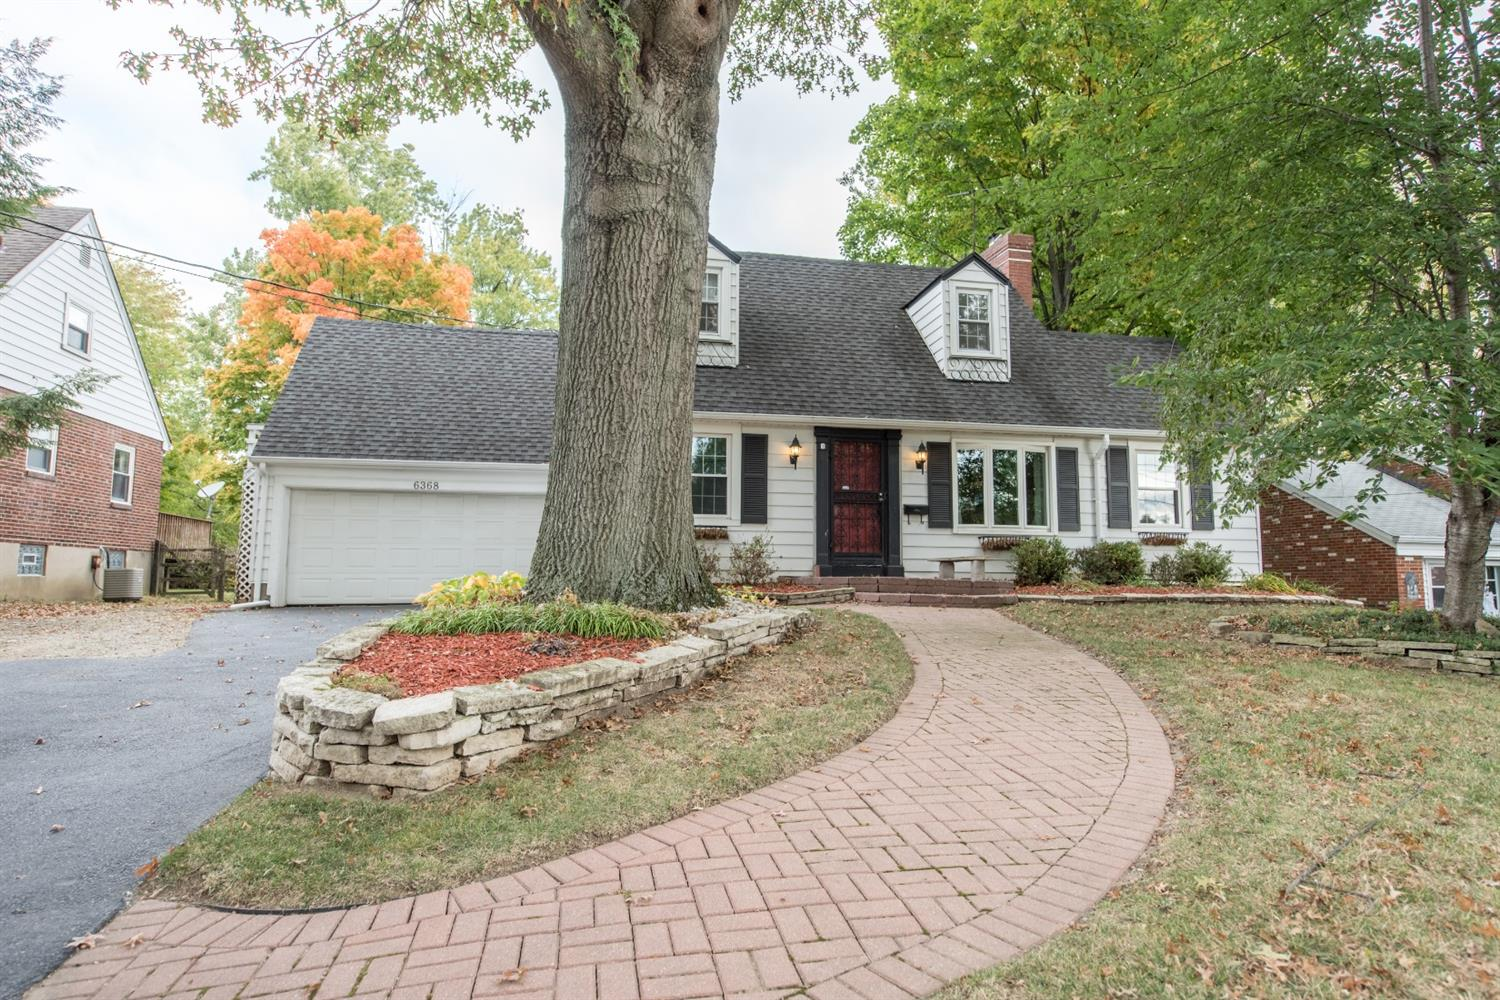 Property for sale at 6368 Euclid Road, Sycamore Twp,  OH 45236